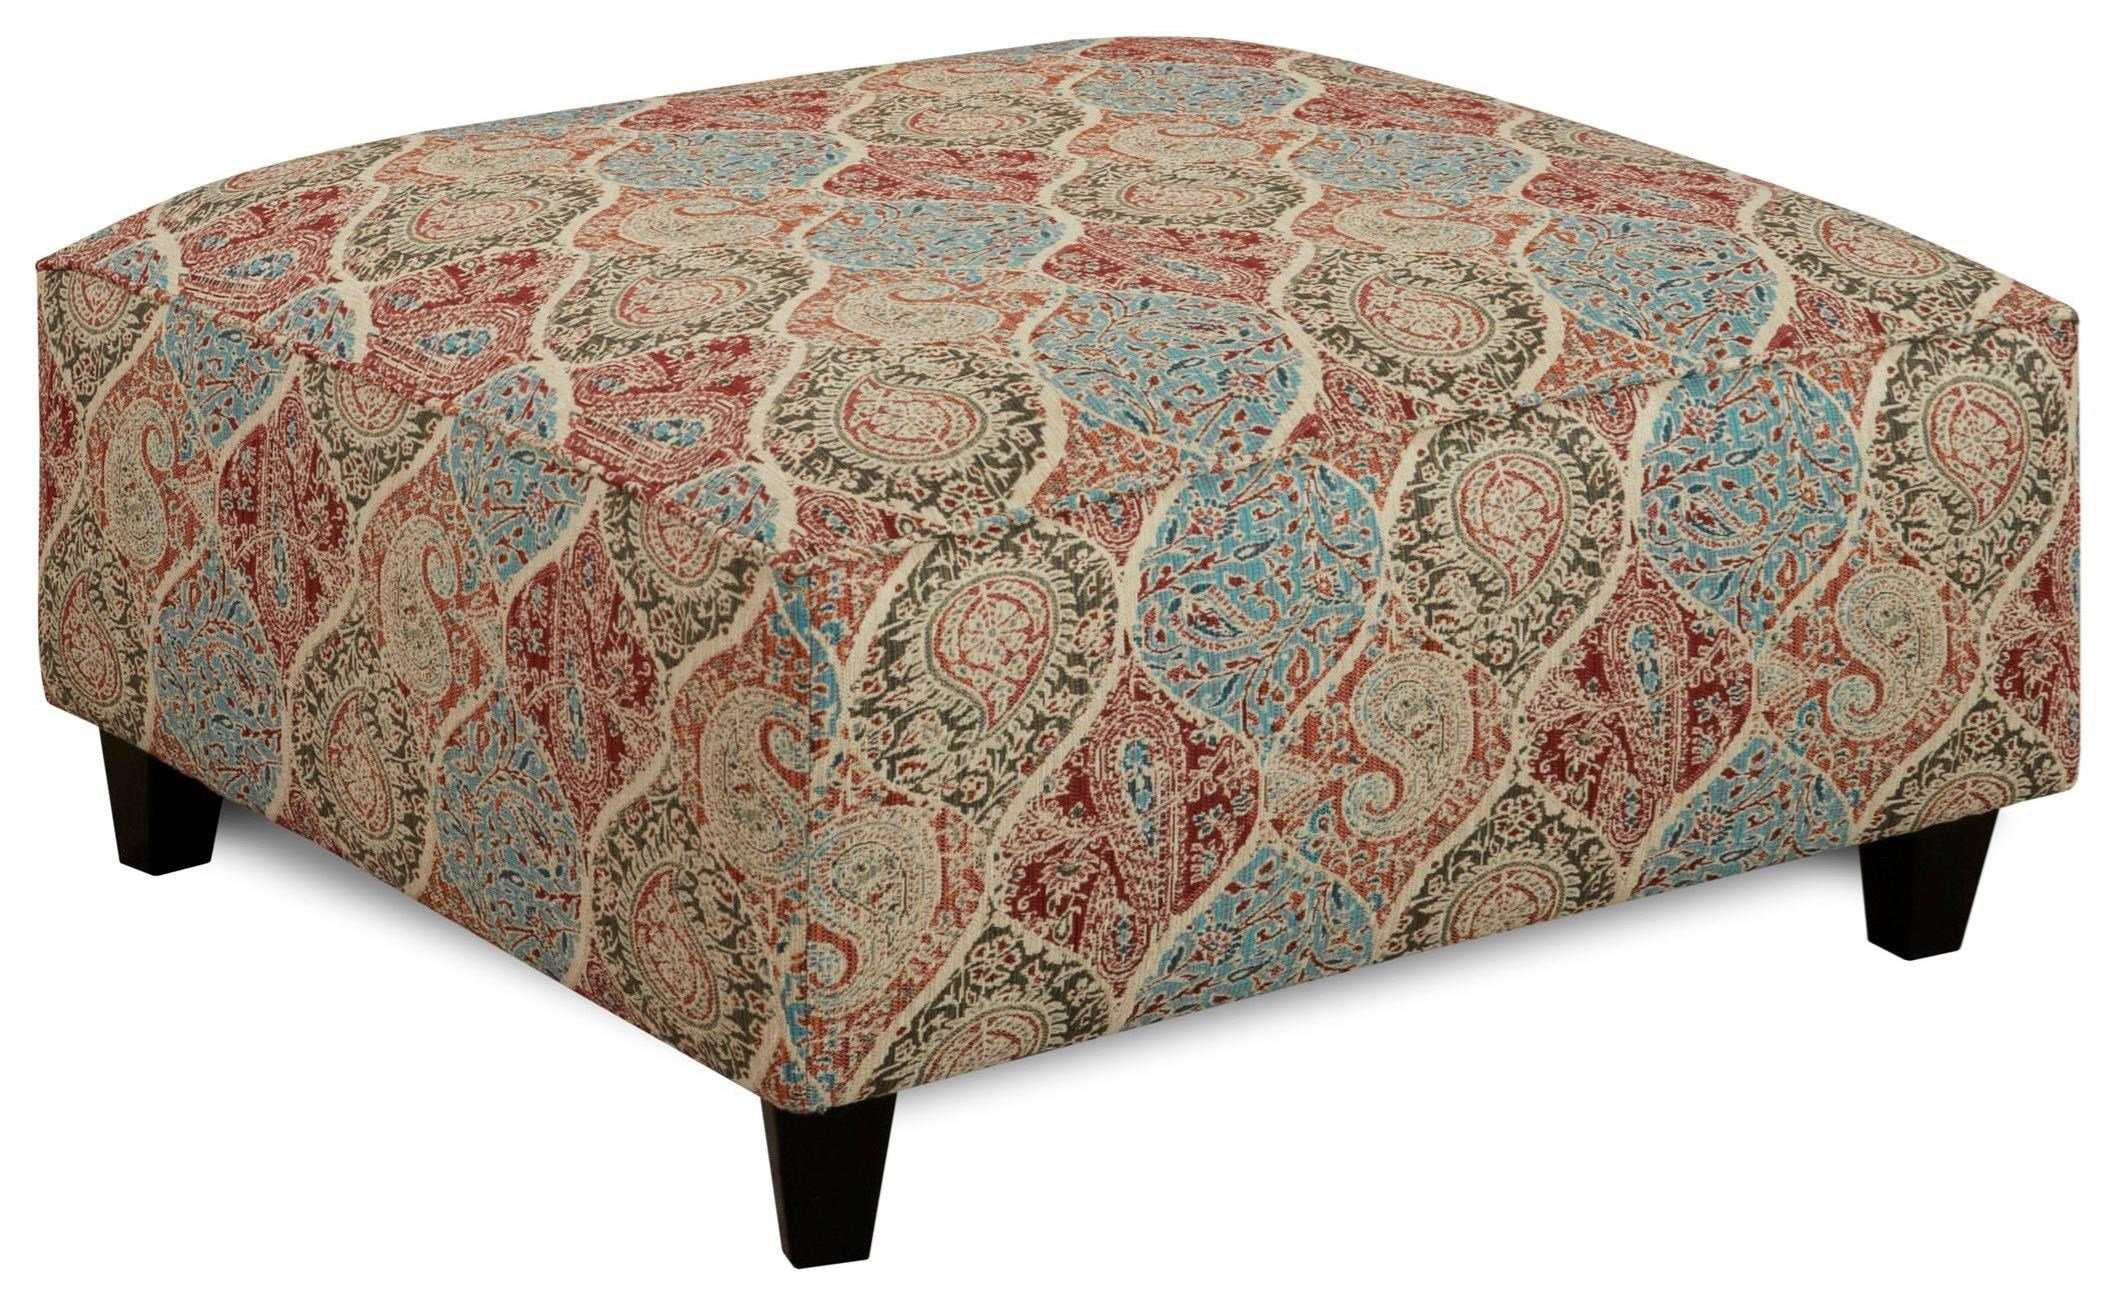 VFM Signature 109 Square Ottoman - Item Number: 109Biltmore Heather